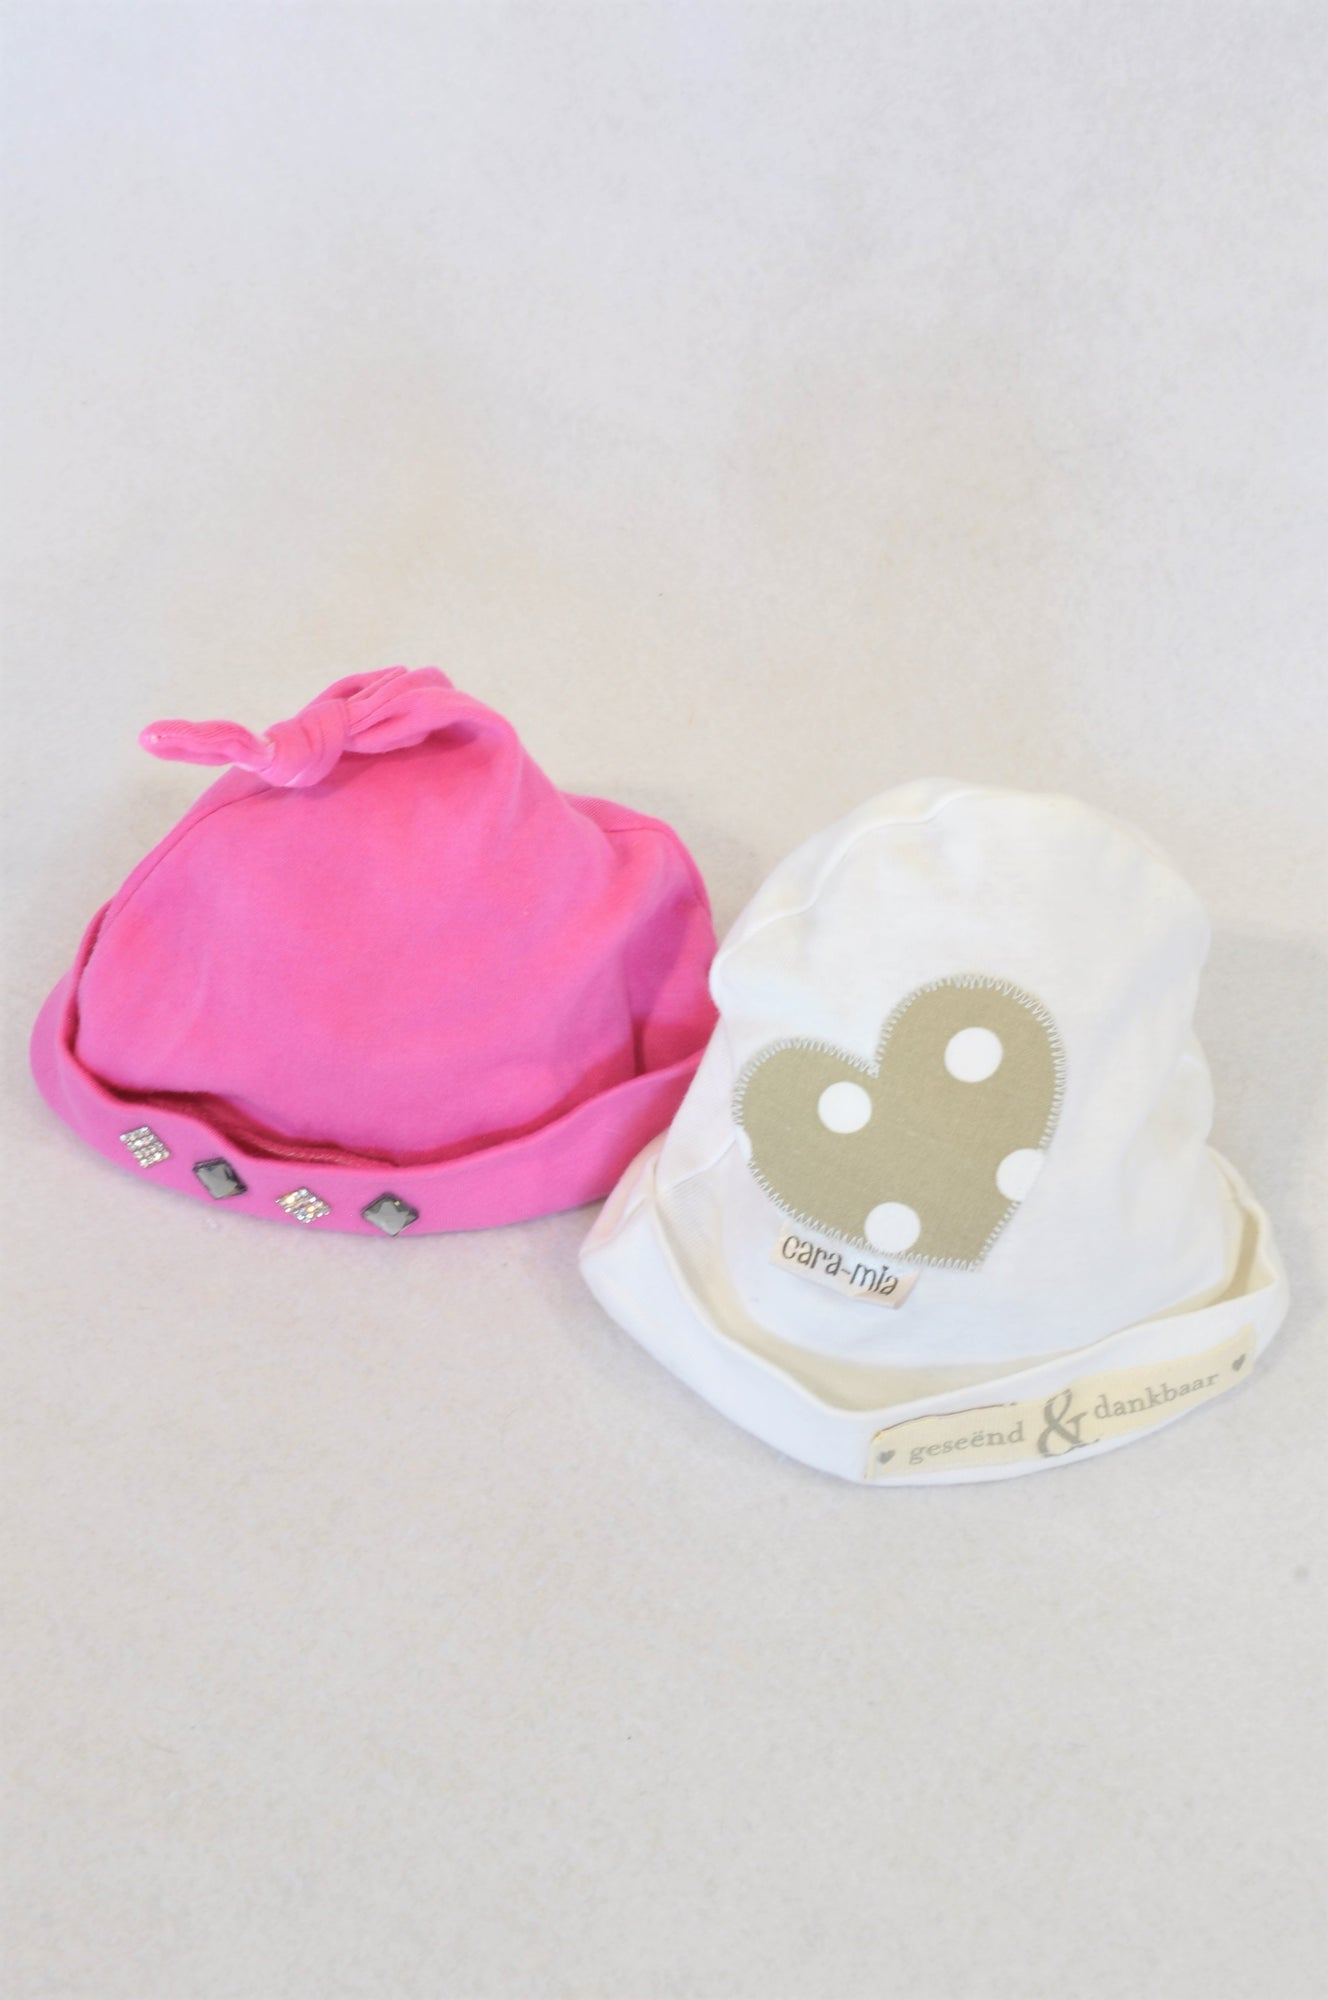 Cara-Mia 2 Pack Pink Diamante Knot & White Heart Patch Geseend & Dankbaar Beanies Girls 3-6 months